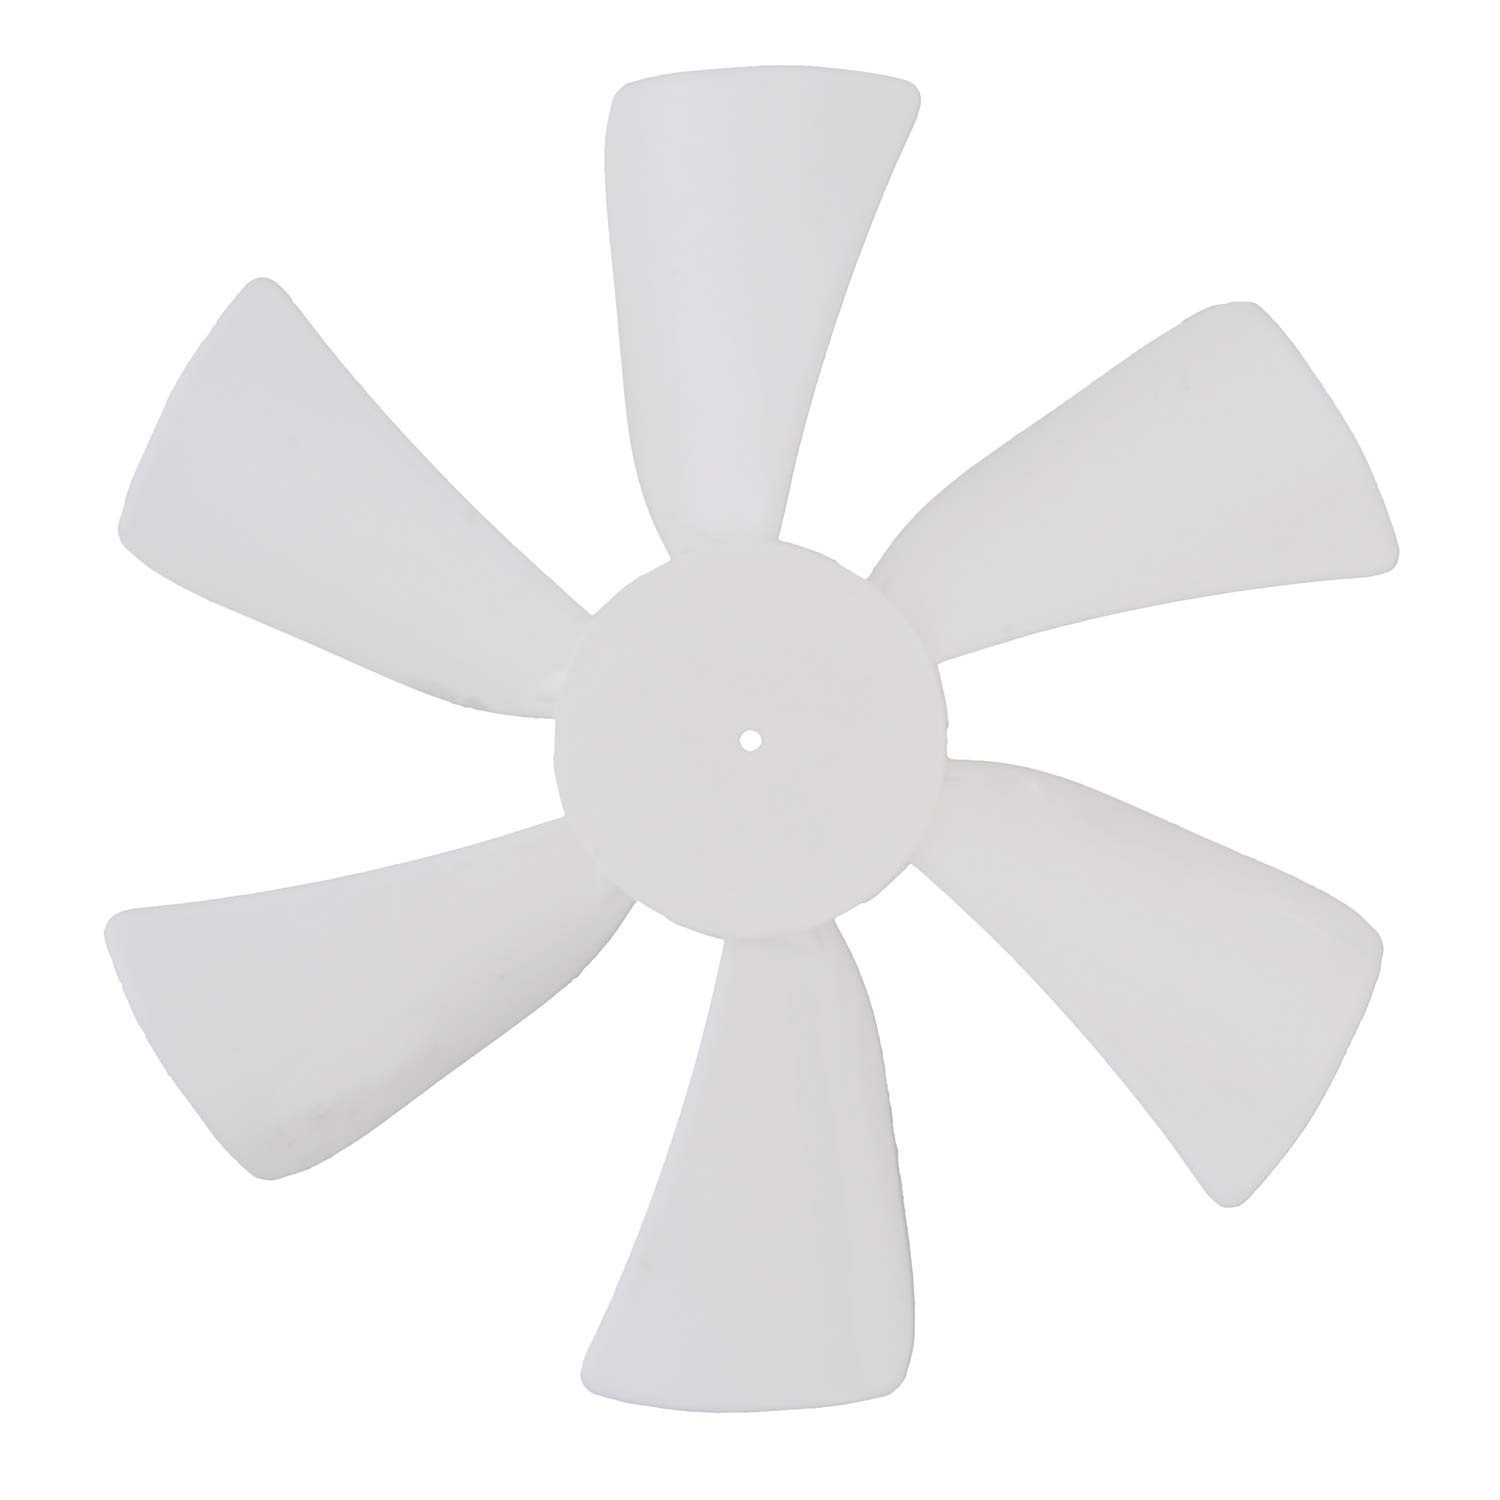 """Dumble Fan Blades Replacement with 0.094"""" Round Bore, 6"""" Inch Black RV Bathroom Fan Blade Replacement Camper Fan Blade"""